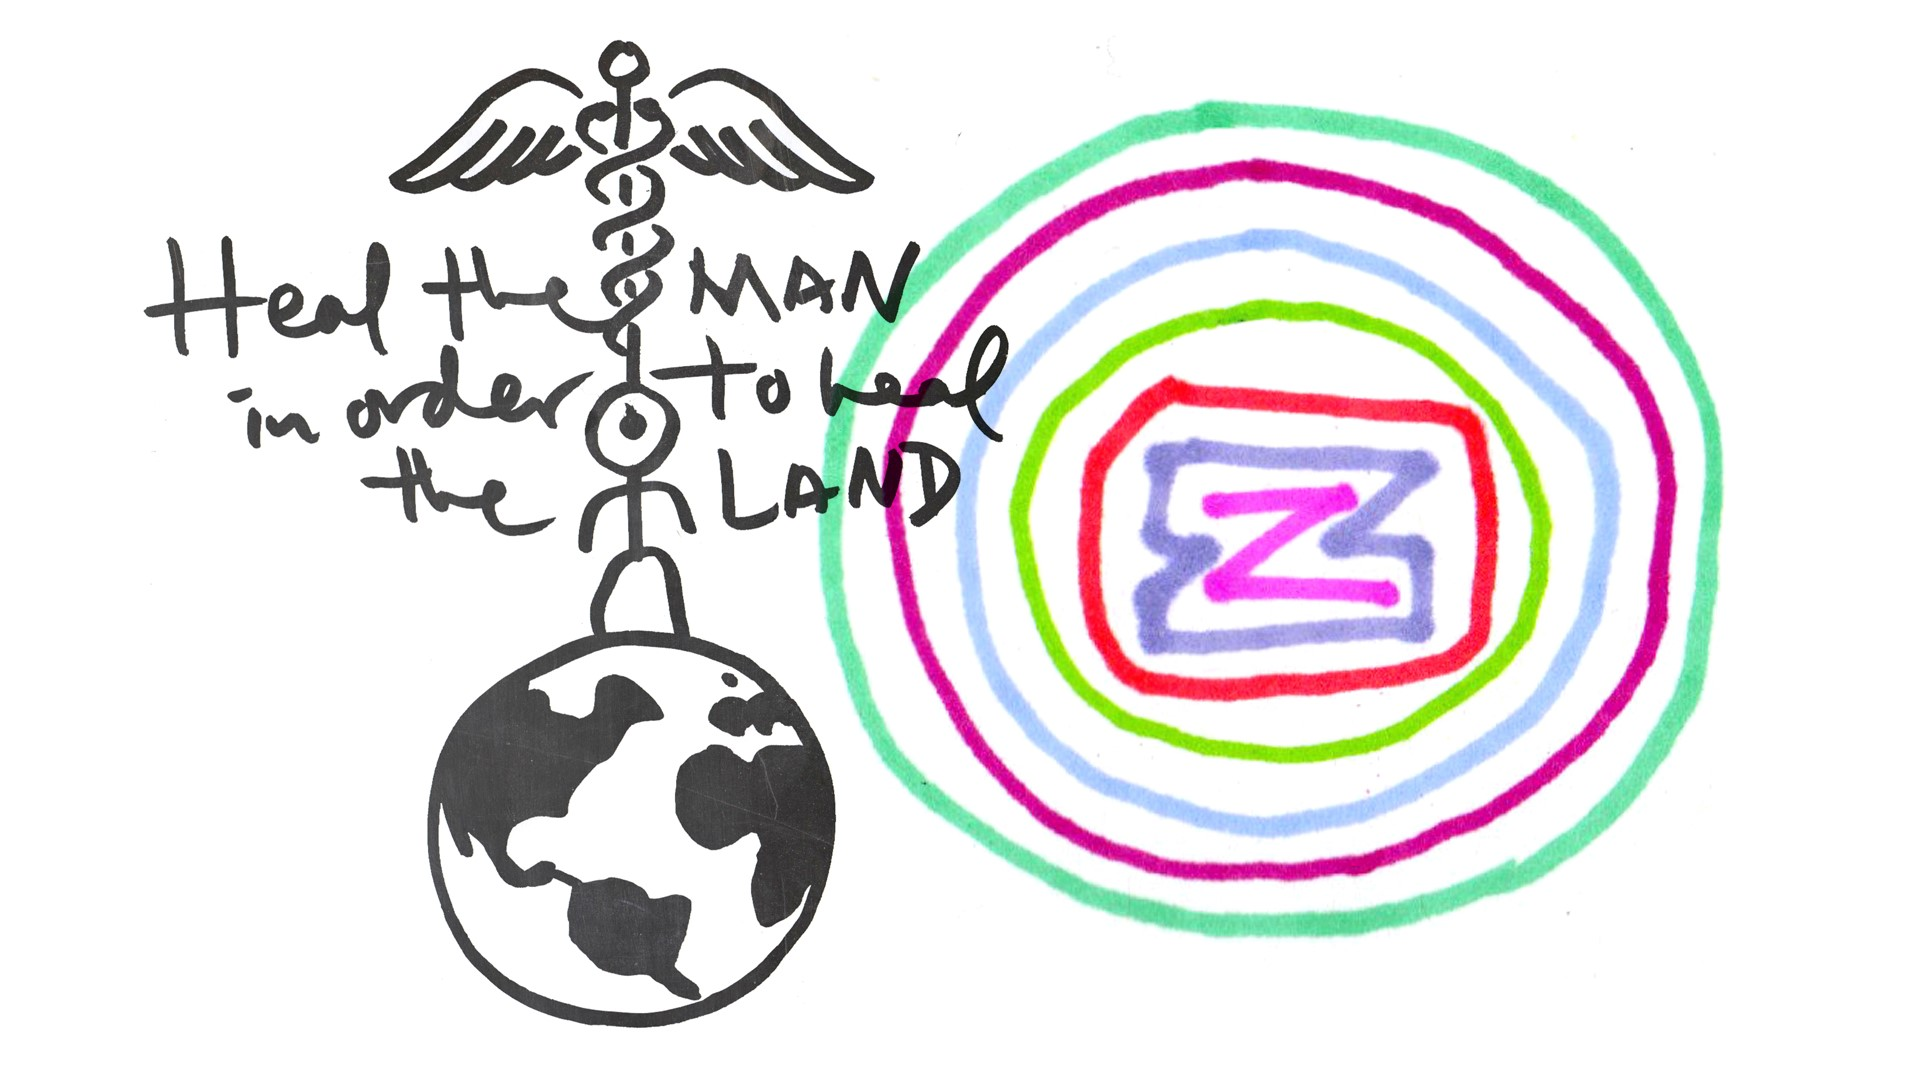 Heal the Man in order to Heal the Land: Connecting to Dreams with Healing Plants with Liz Neves of Gathering Ground